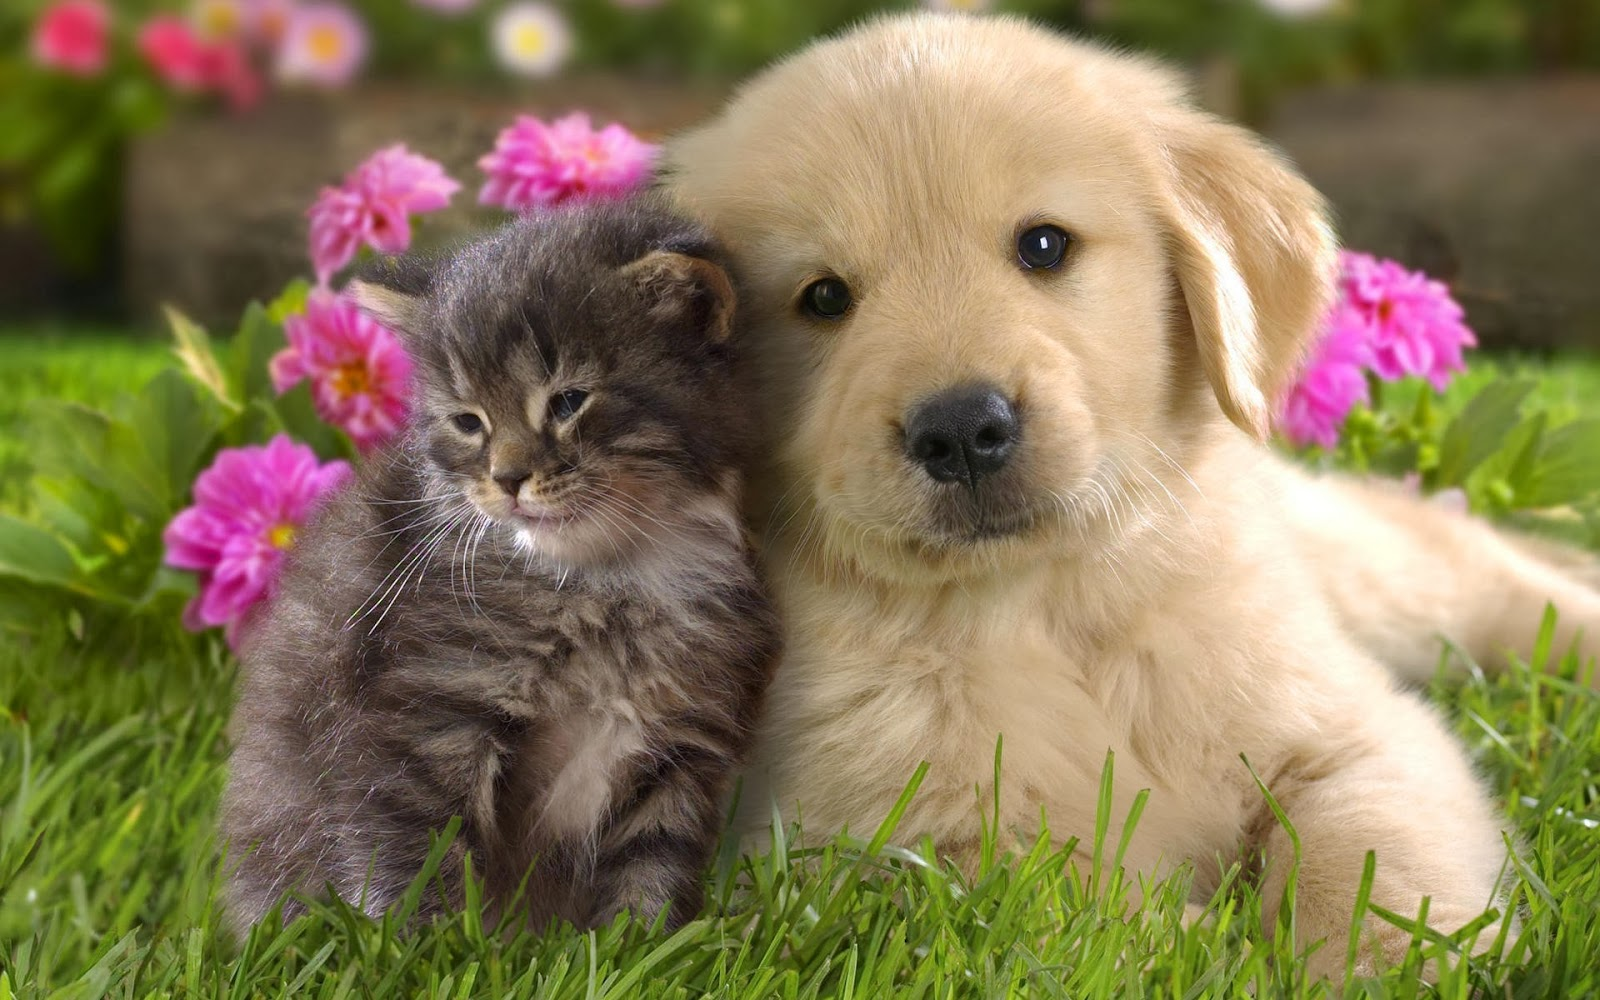 hd wallpapers: lovely kitten and puppy